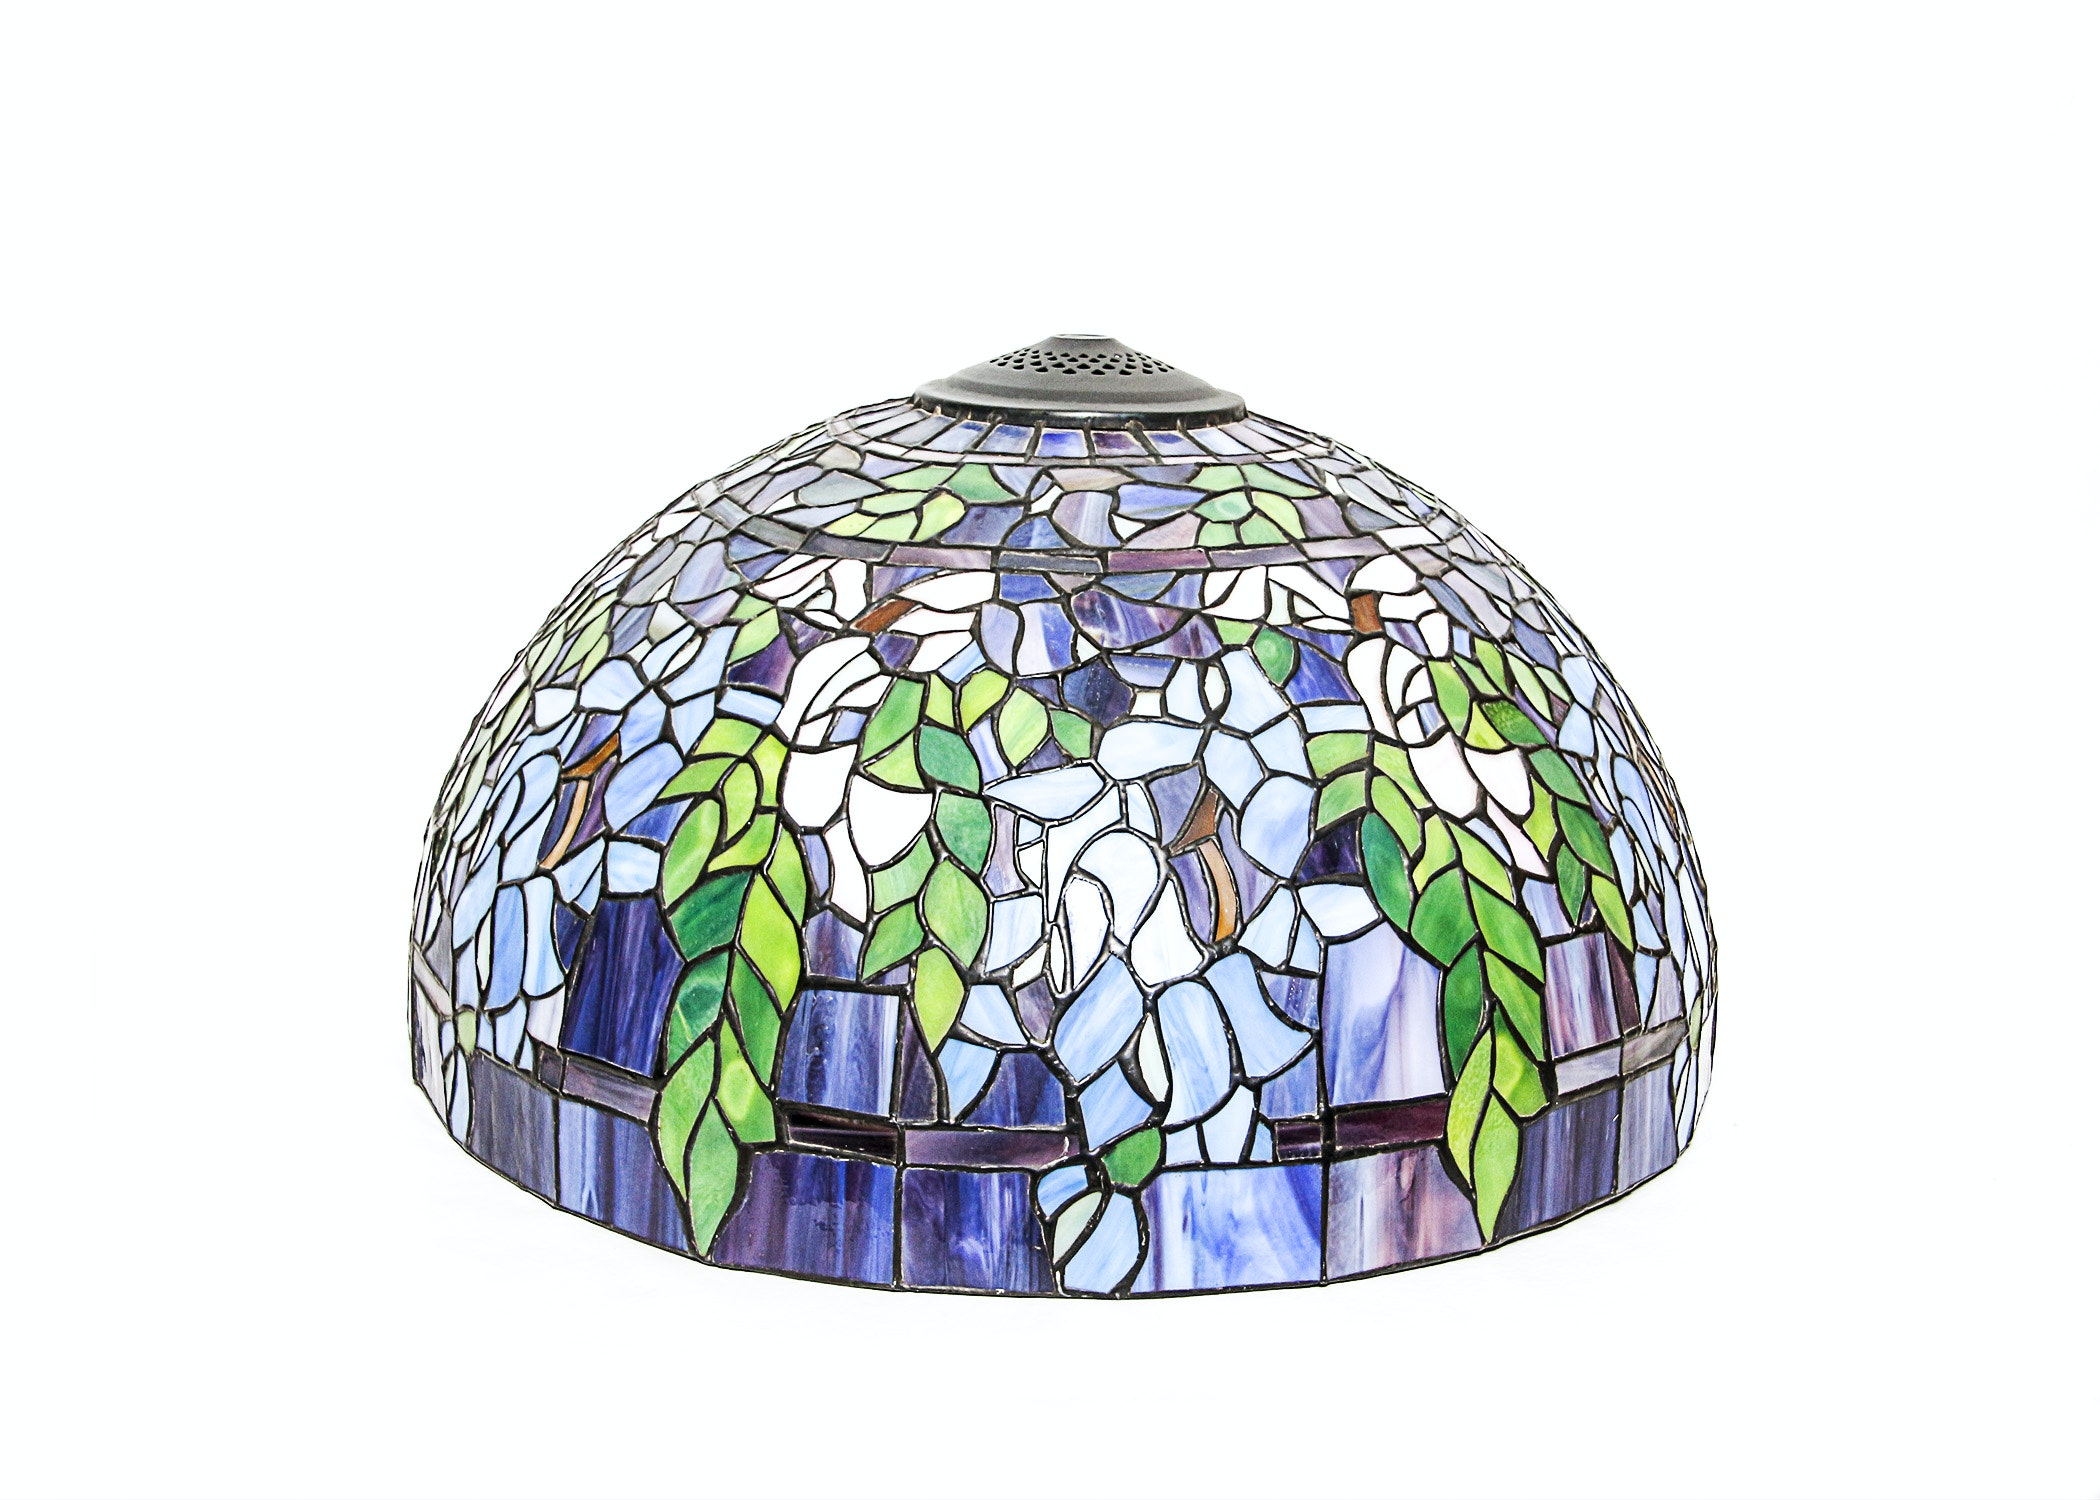 Tiffany Style Stained Glass Dome Lamp Shade